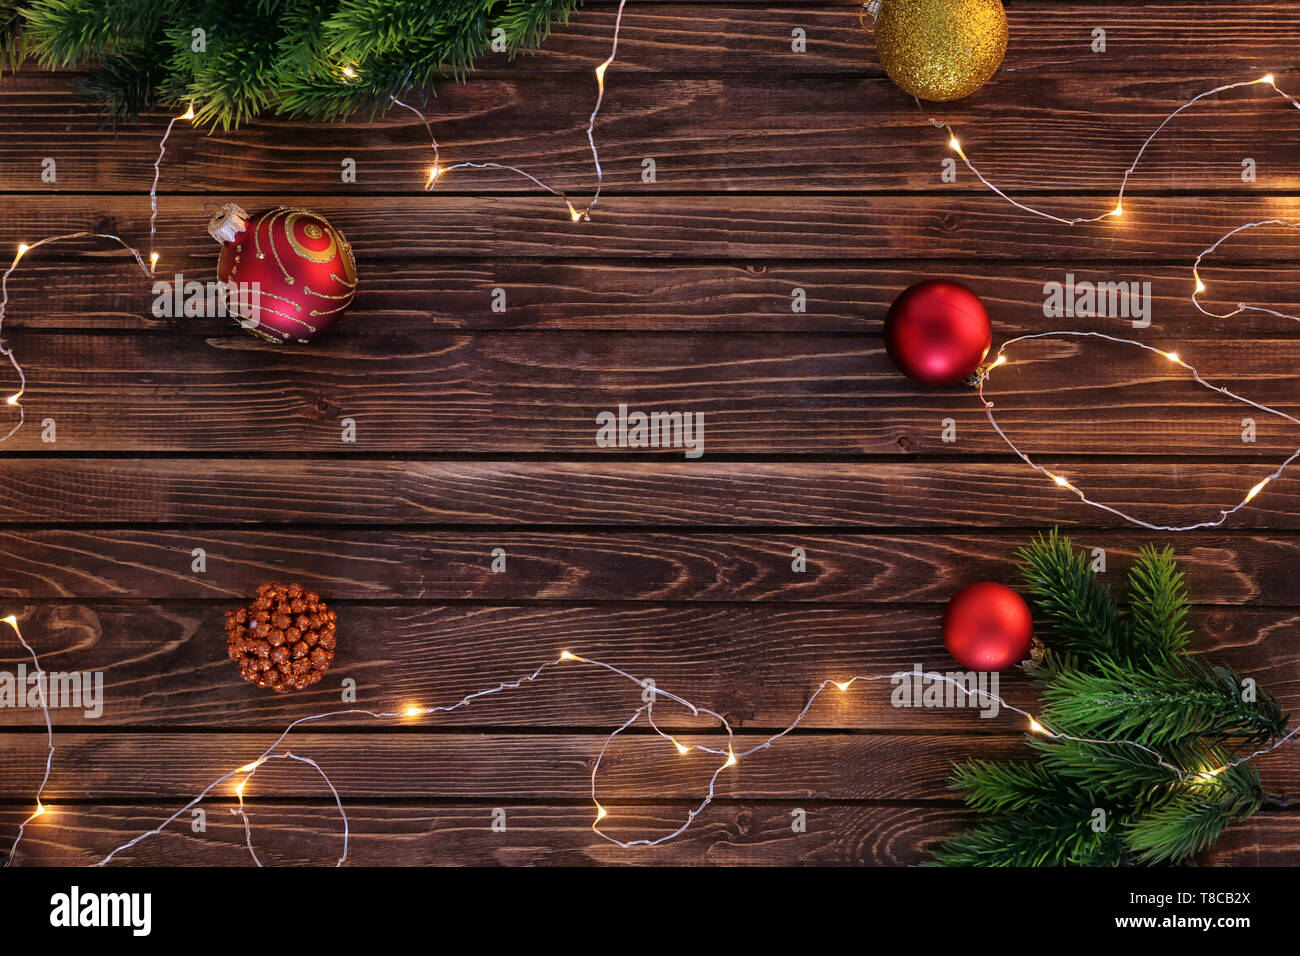 Frame Made Of Christmas Decorations And Fairy Lights On Wooden Background Stock Photo Alamy